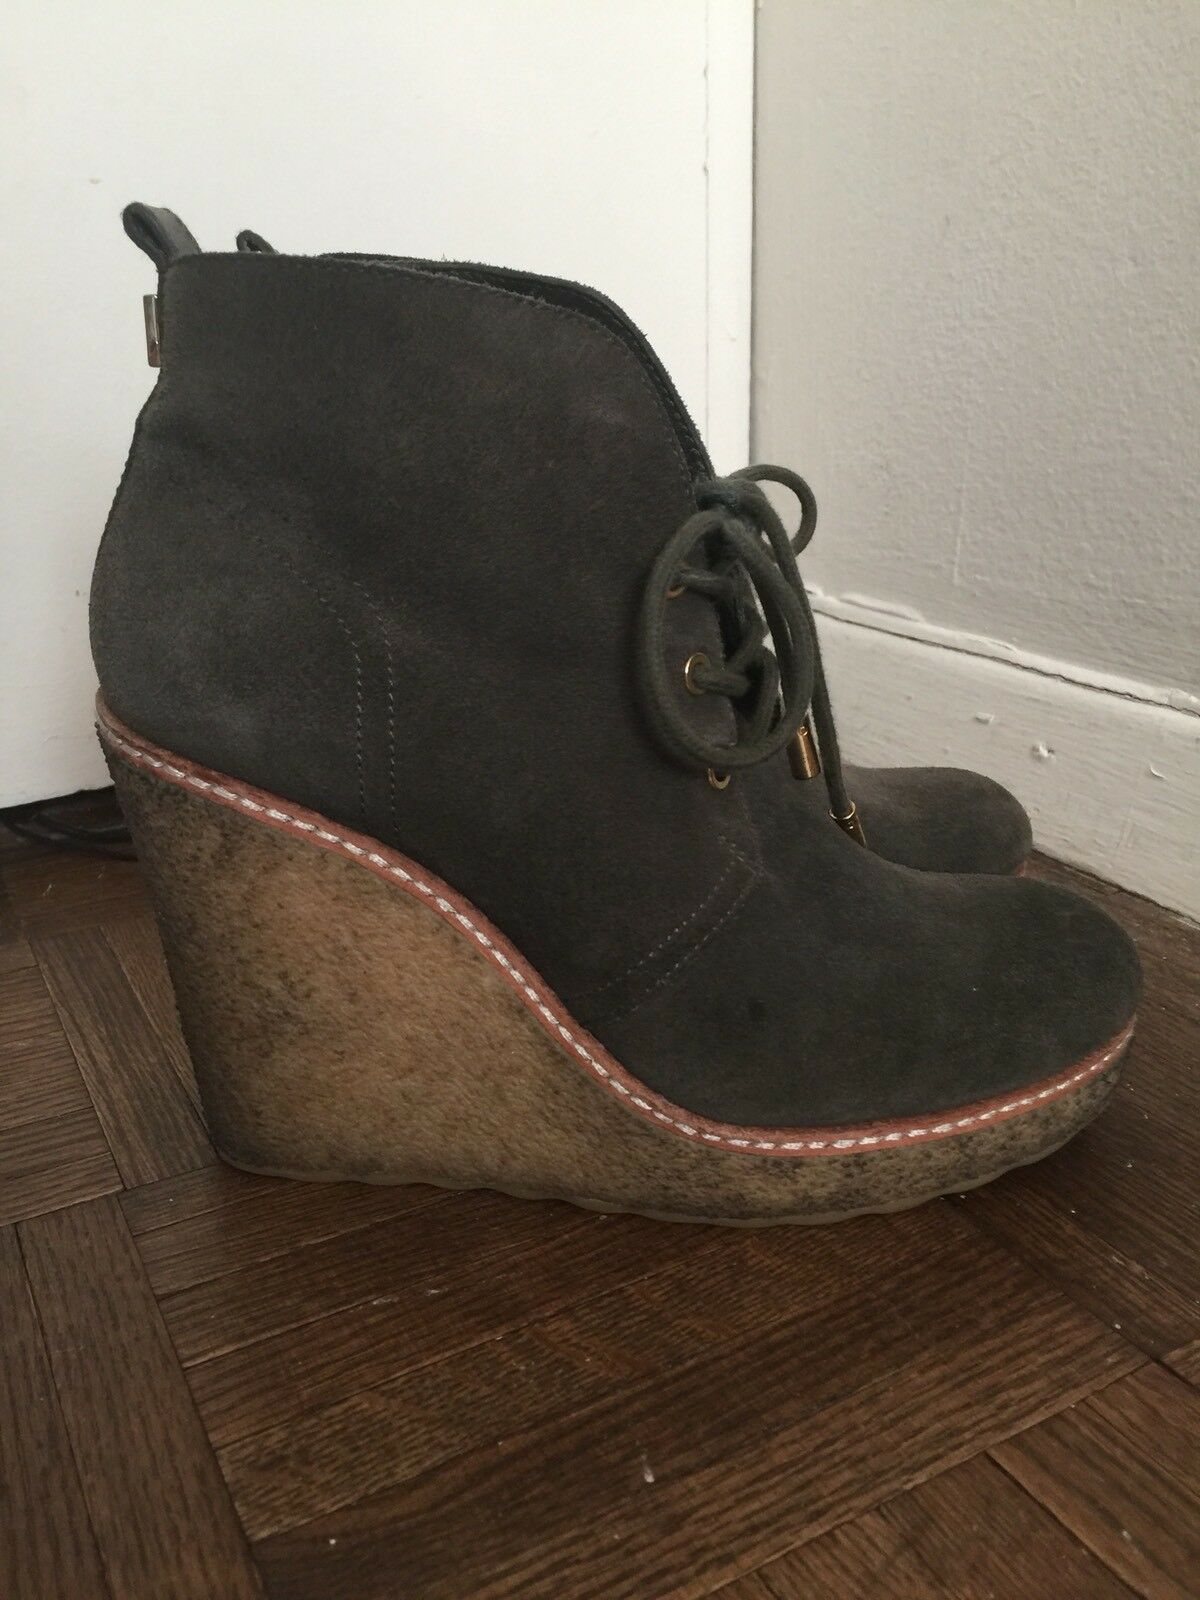 Tory Burch Vikki Vikki Vikki Suede Ankle Mid Wedge Boots Size 7 Booties  Retails for  350 87c21e